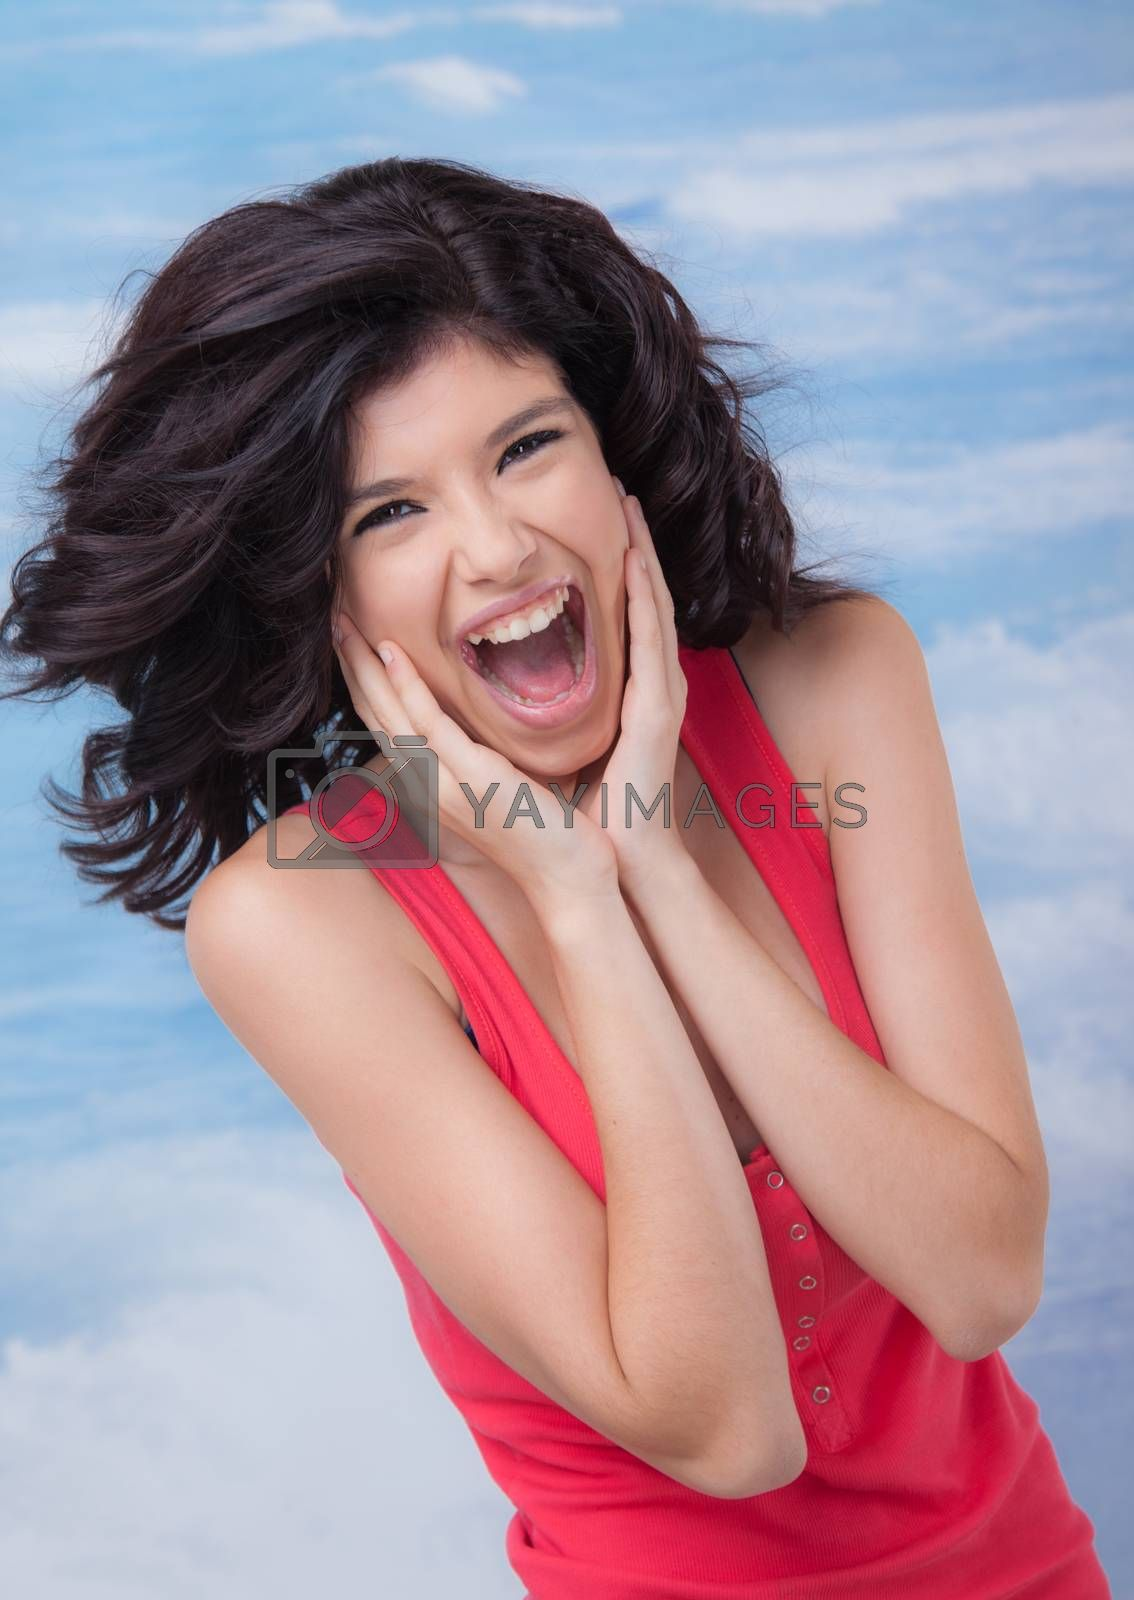 Young beautiful female is screaming or laughing, holding face with hands.